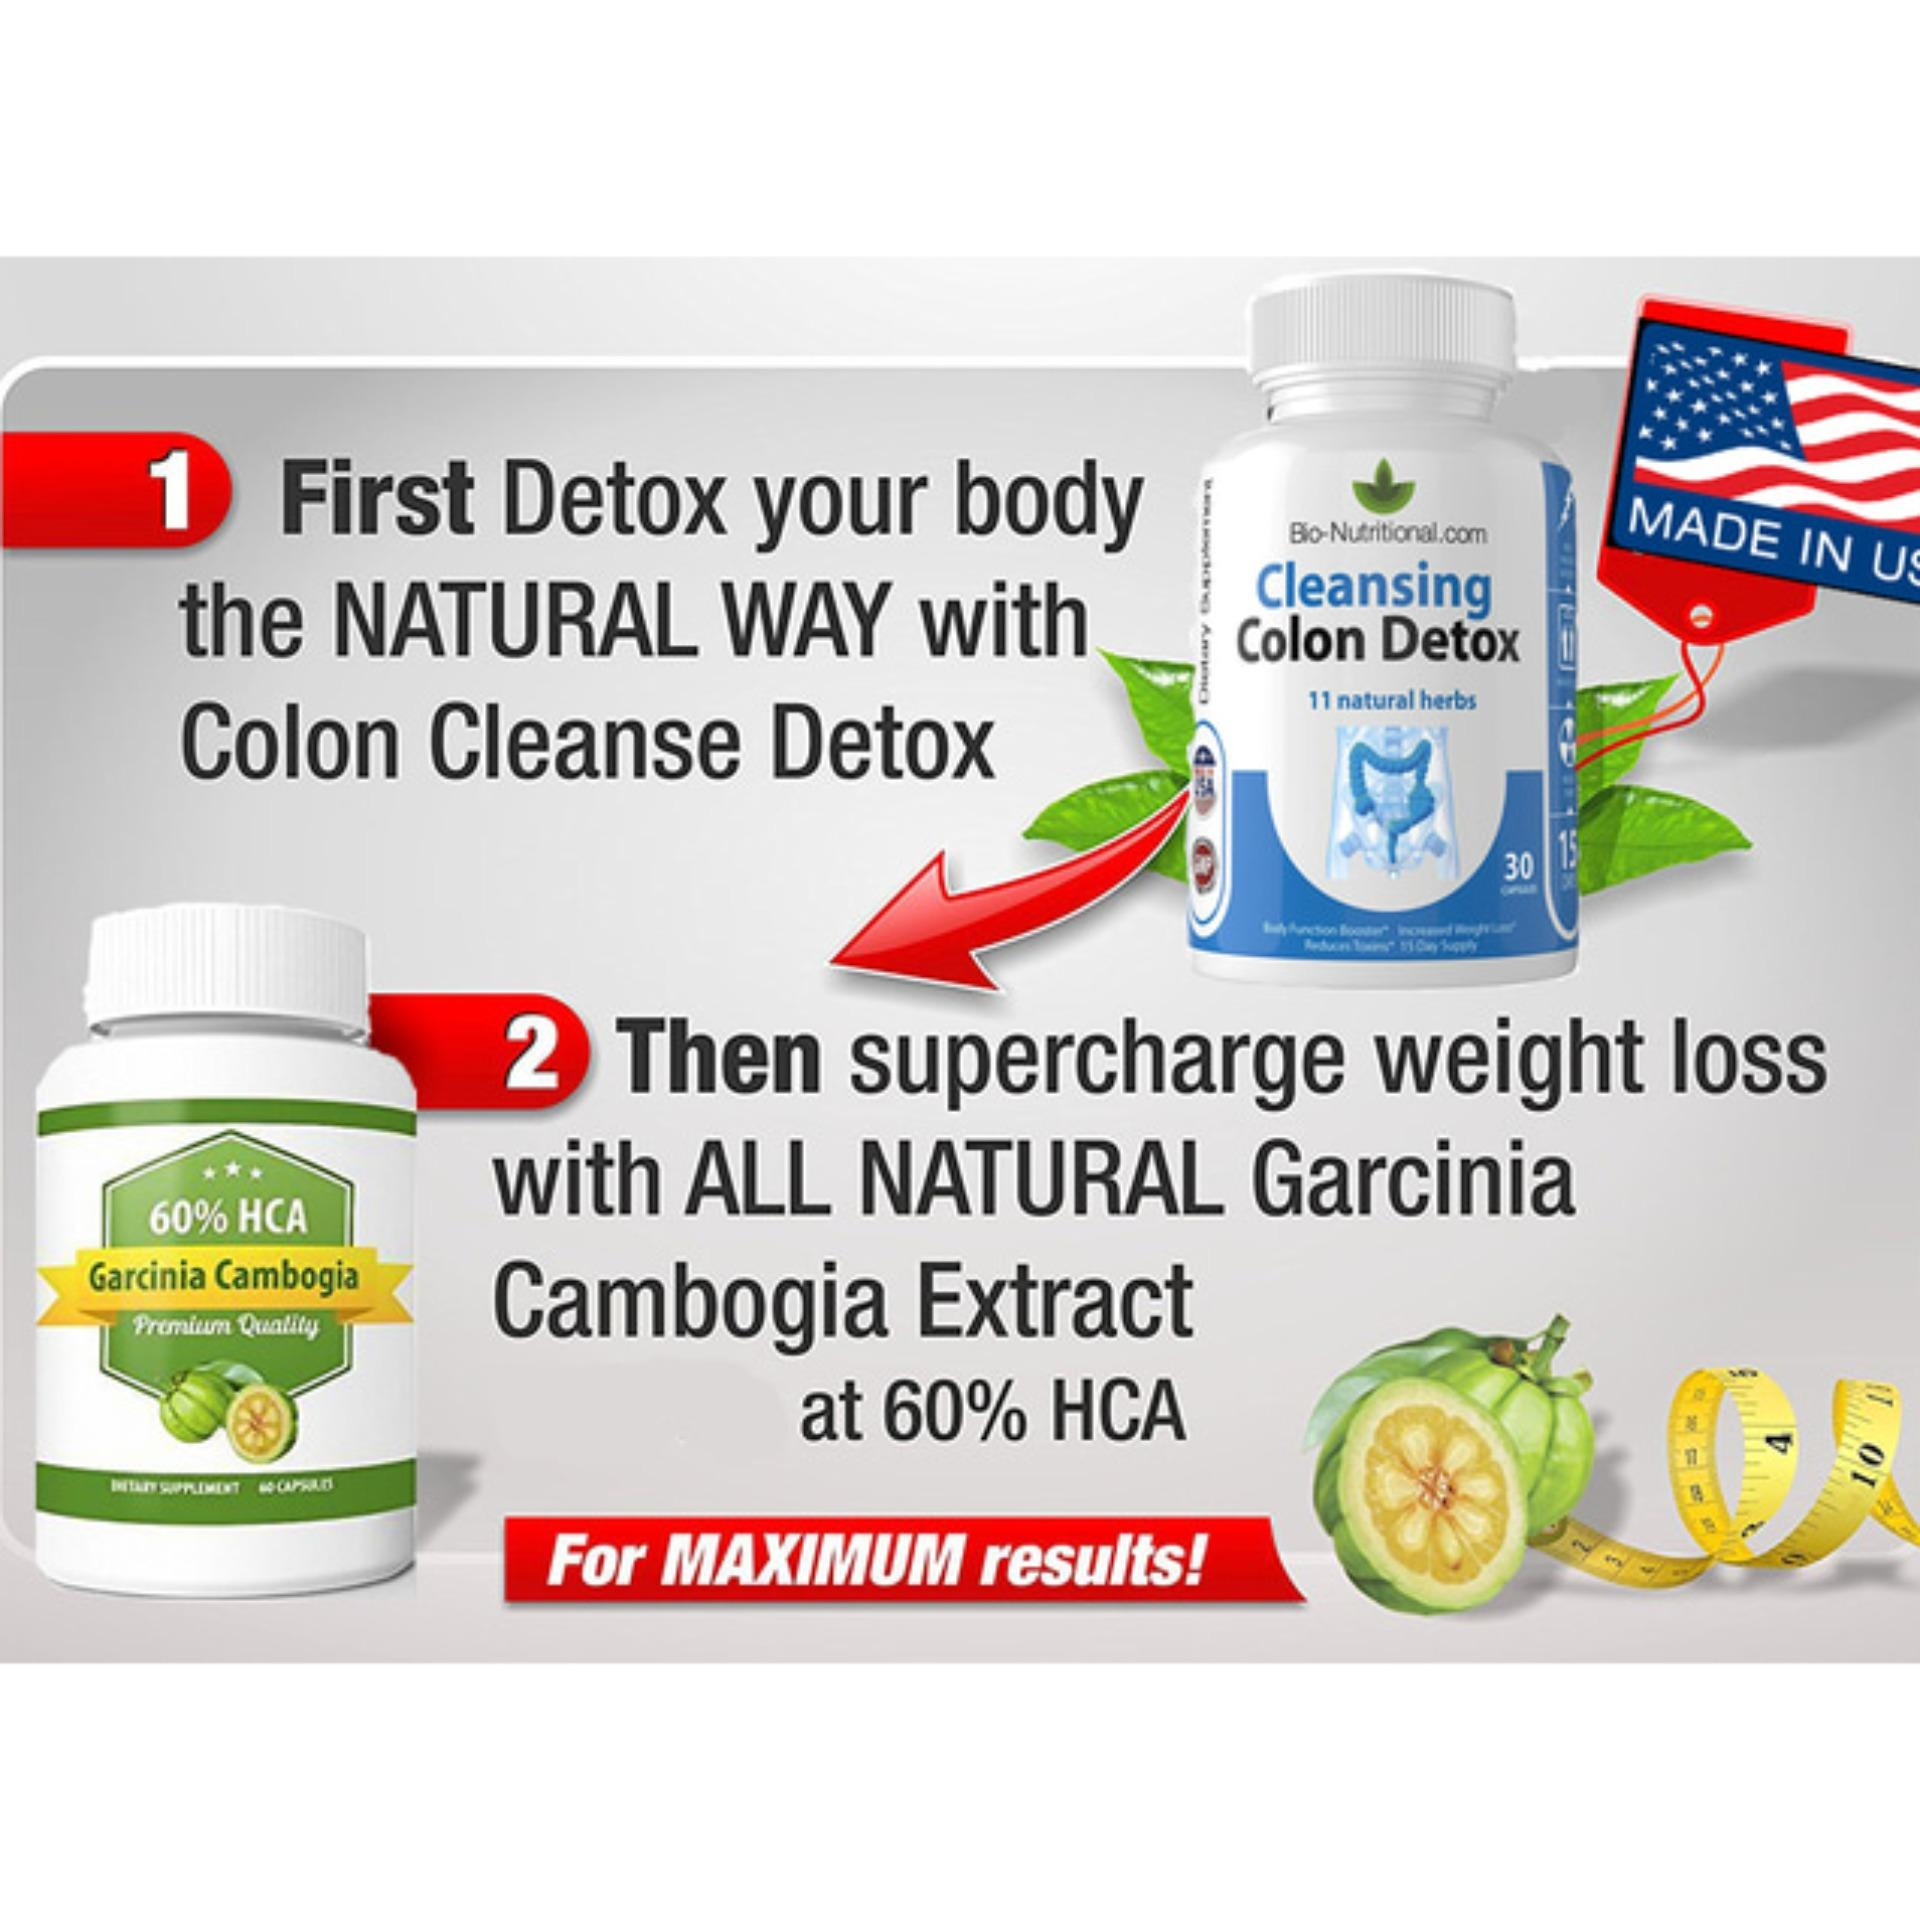 Top fat burn products photo 3